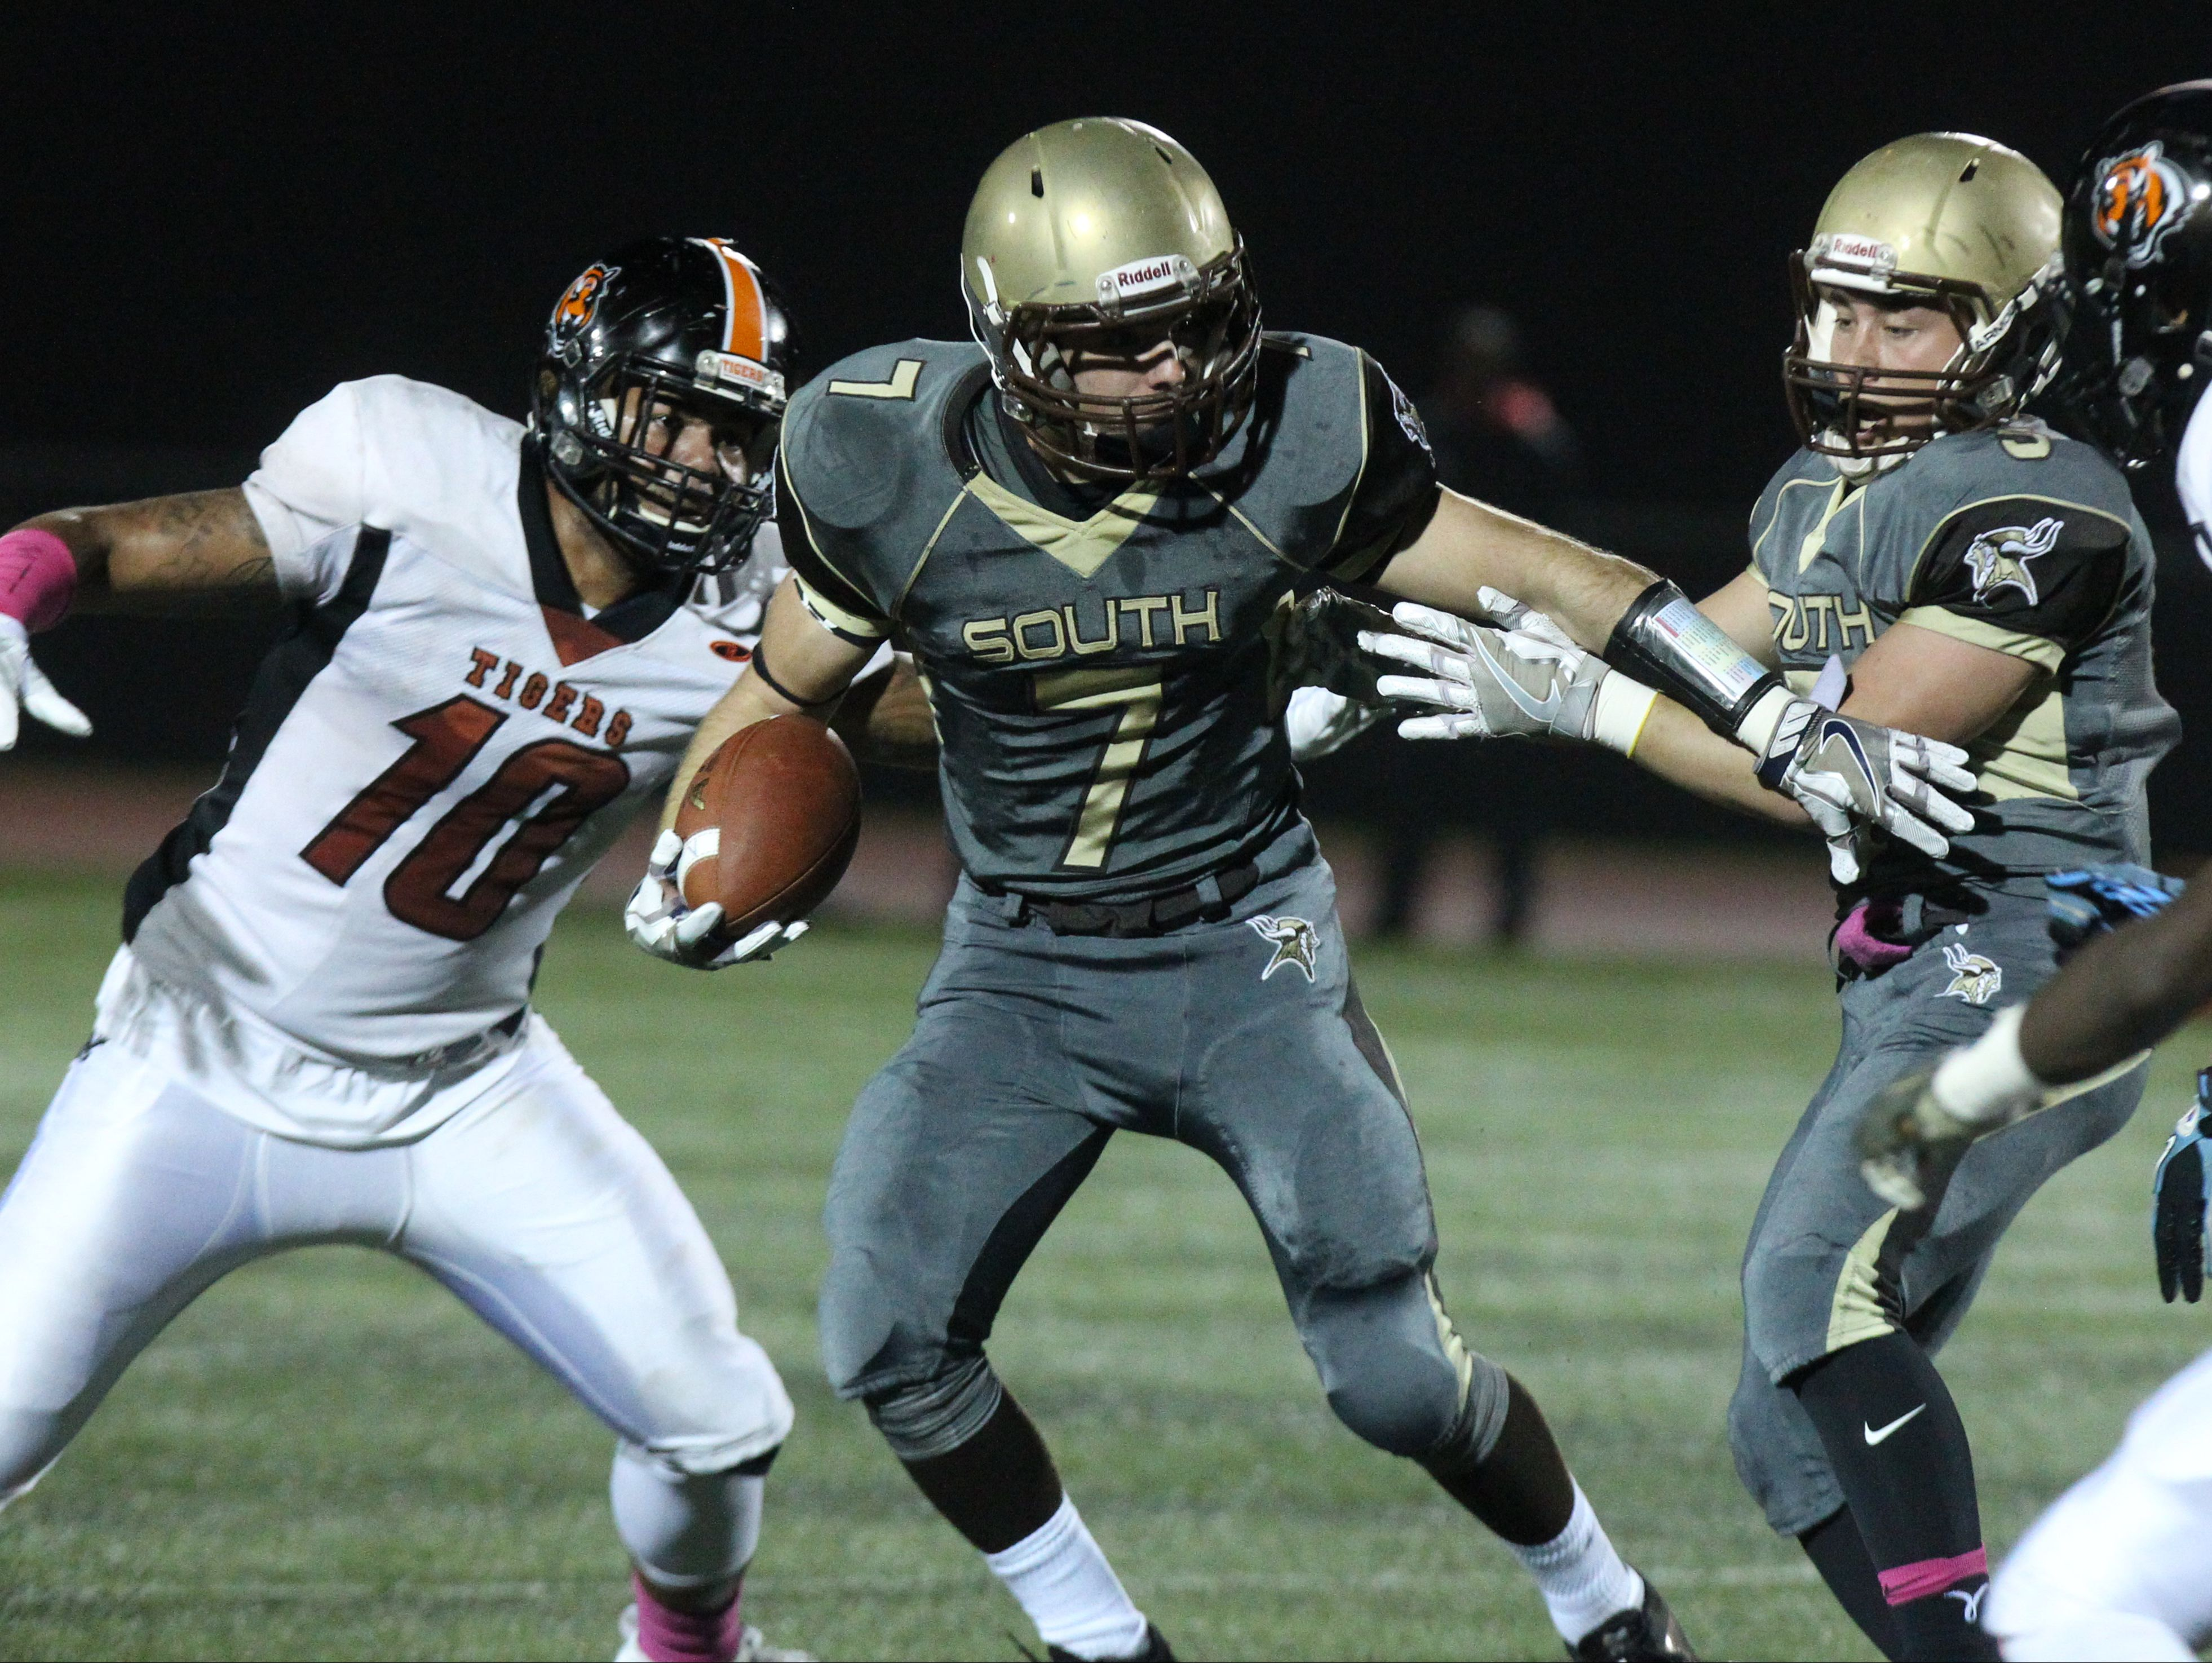 Clarkstown South's Sam Mistretta gets past Spring Valley's Devan Lawson during their Class AAquarterfinal at Clarkstown South Friday night.